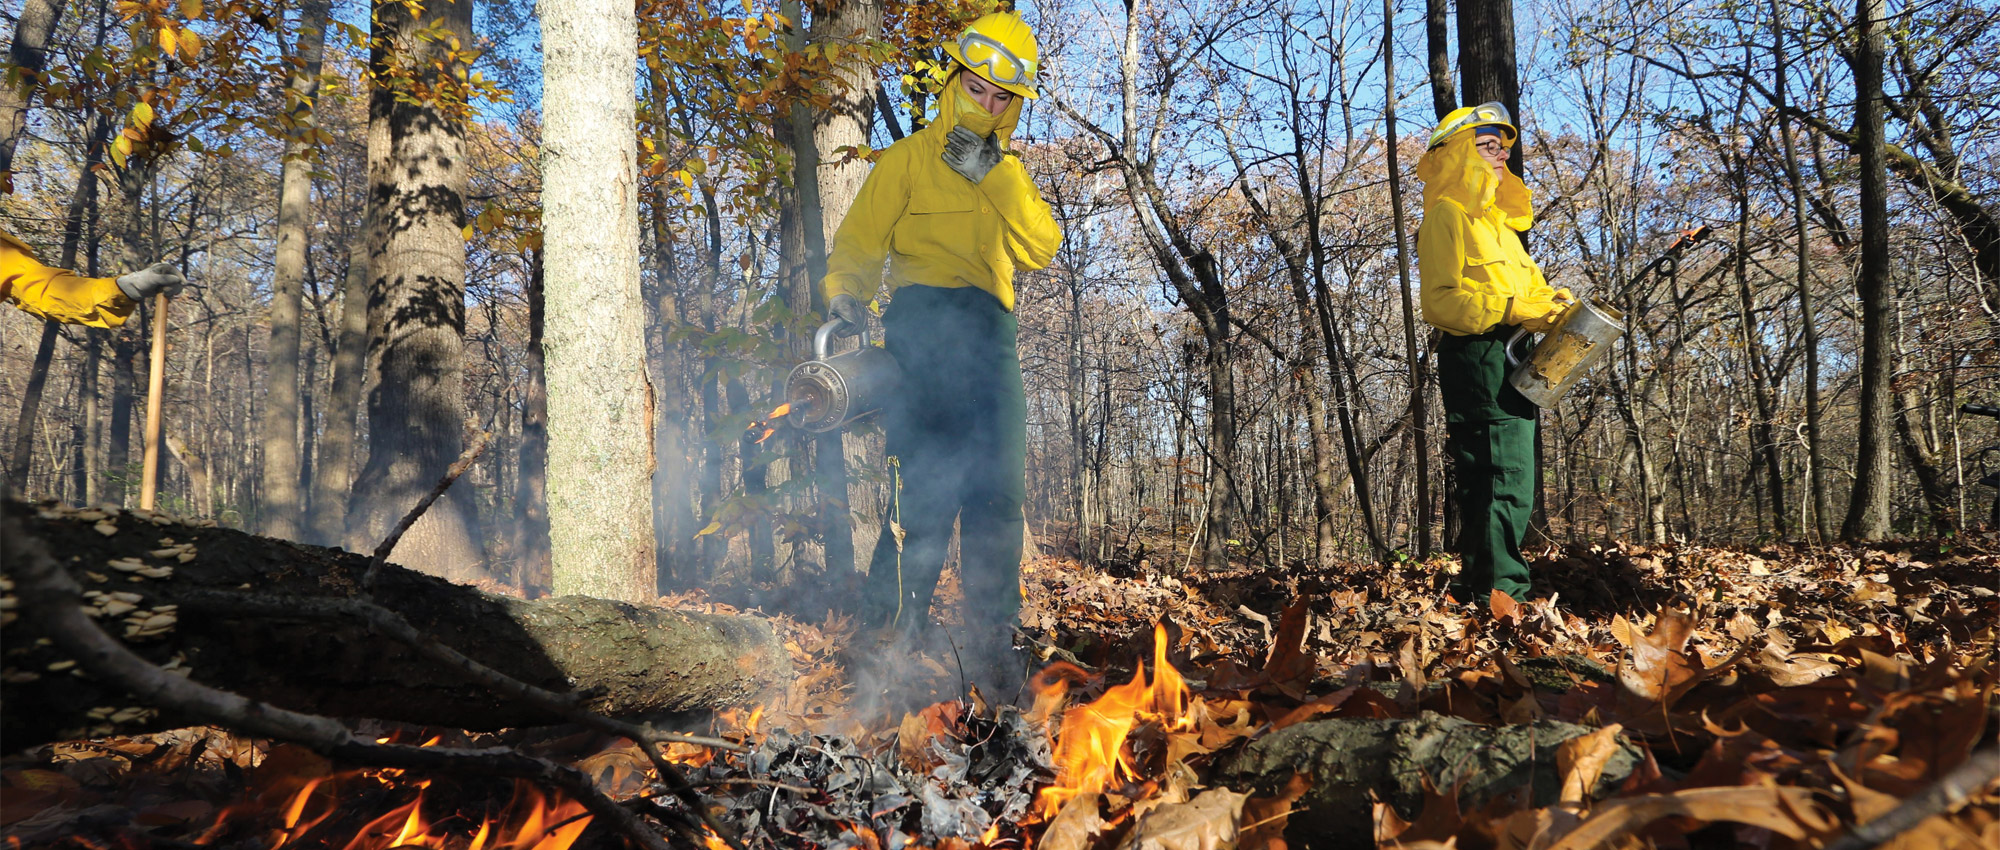 firefighters manage a controlled burn during a training course in Martell Forest